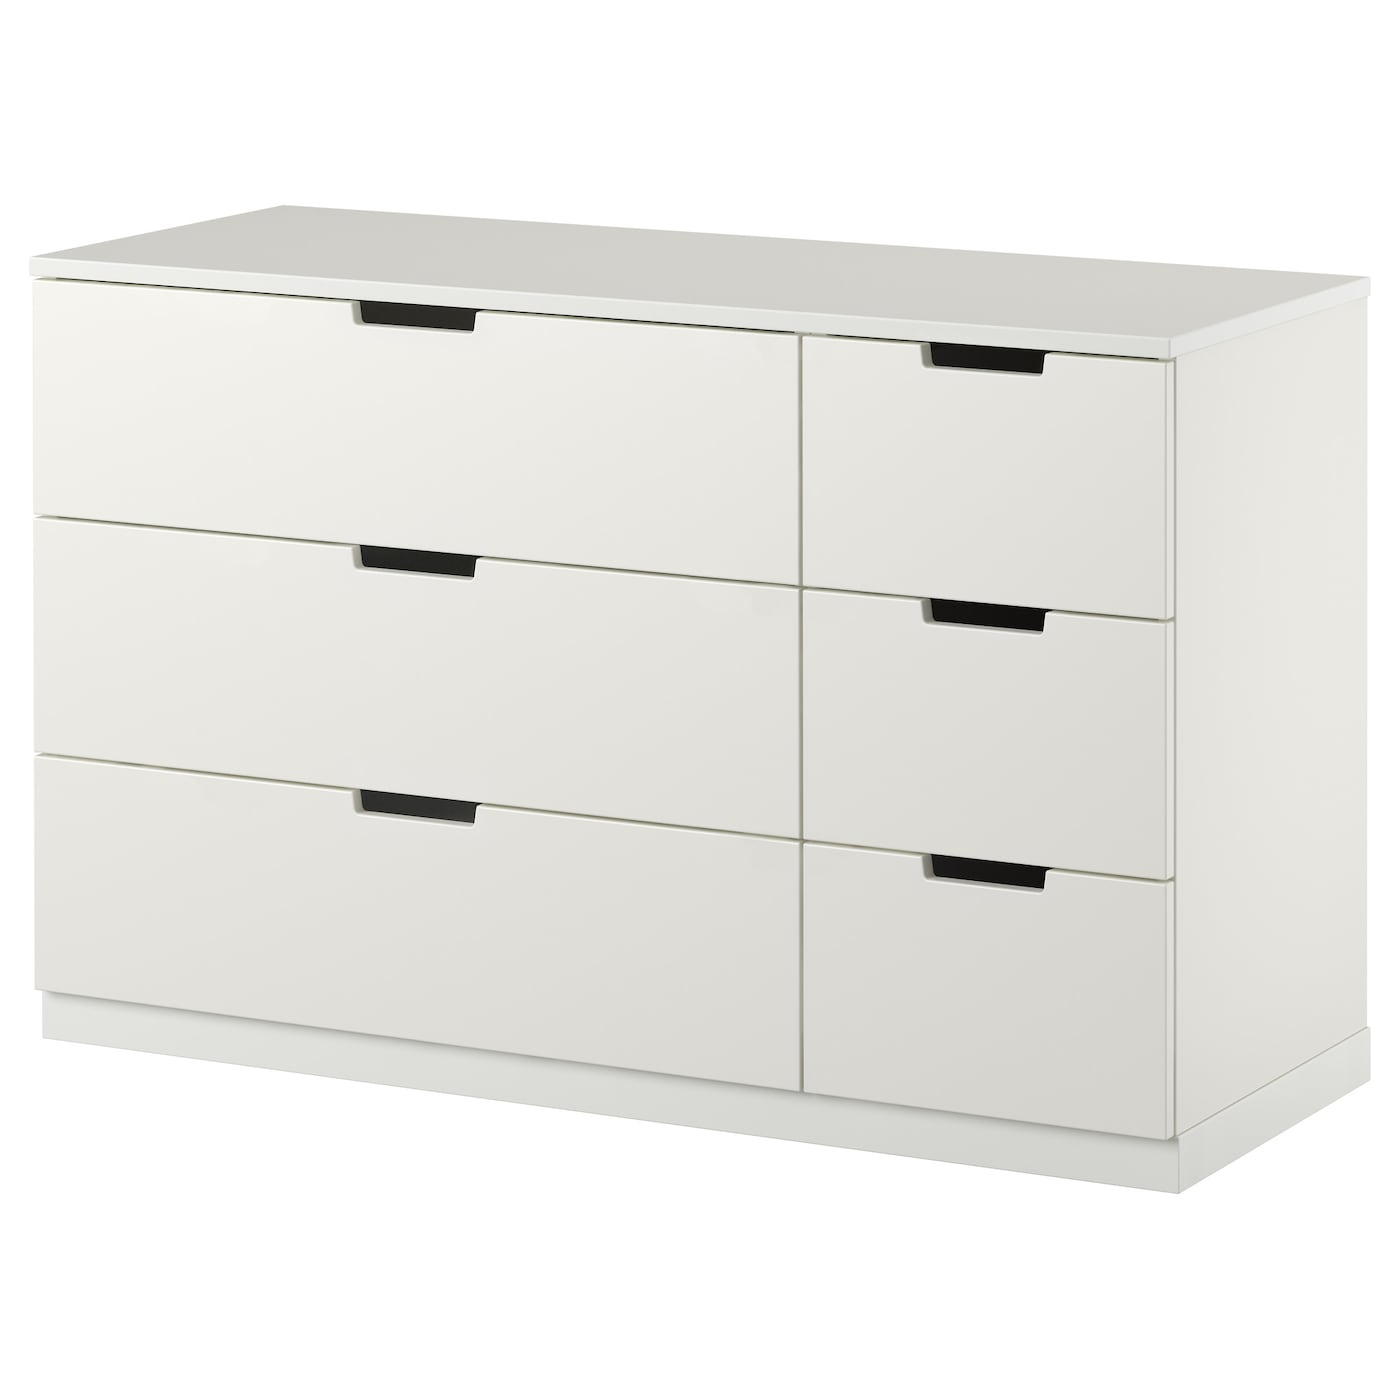 nordli chest of 6 drawers white 120x75 cm ikea. Black Bedroom Furniture Sets. Home Design Ideas